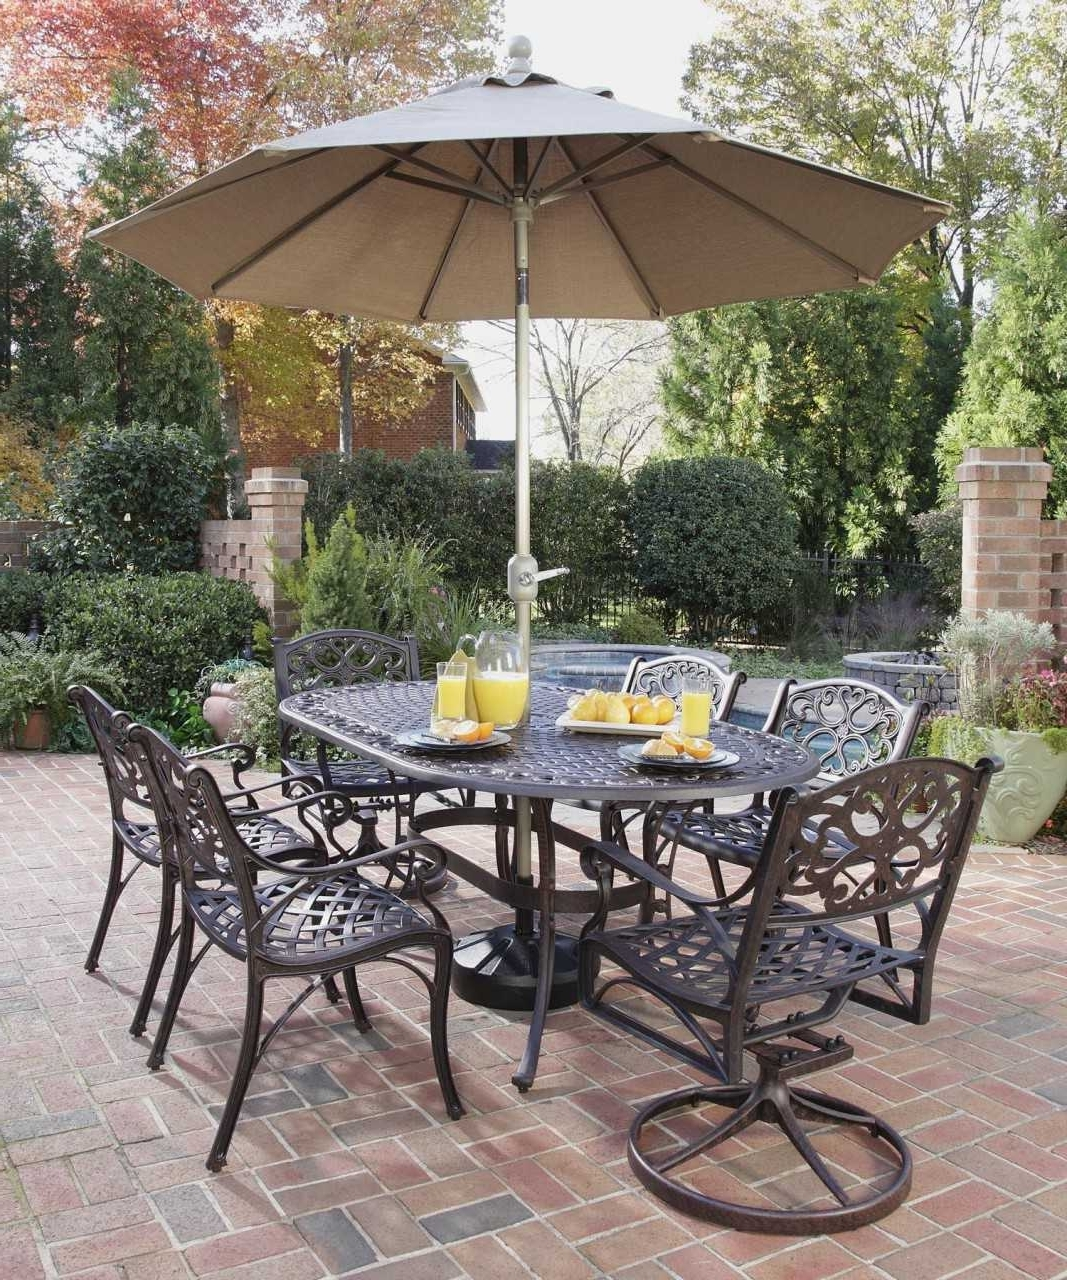 Best And Newest Fascinating Patio Table Sets With Umbrella Trends Including Cheap Inside Patio Table And Chairs With Umbrellas (View 6 of 20)